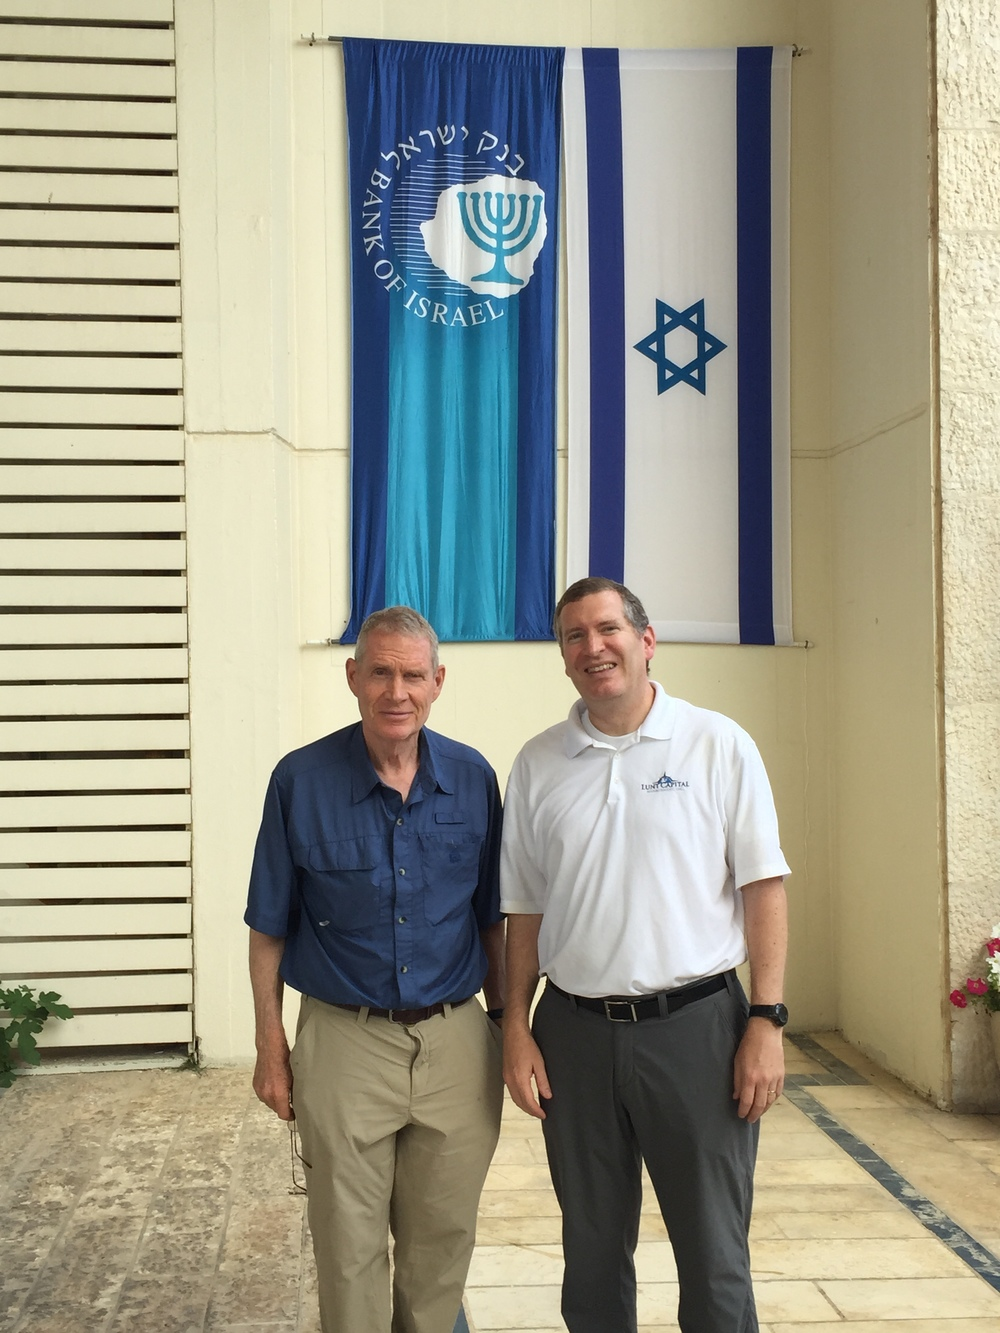 Larry Lunt and John Lunt at the Bank of Israel.